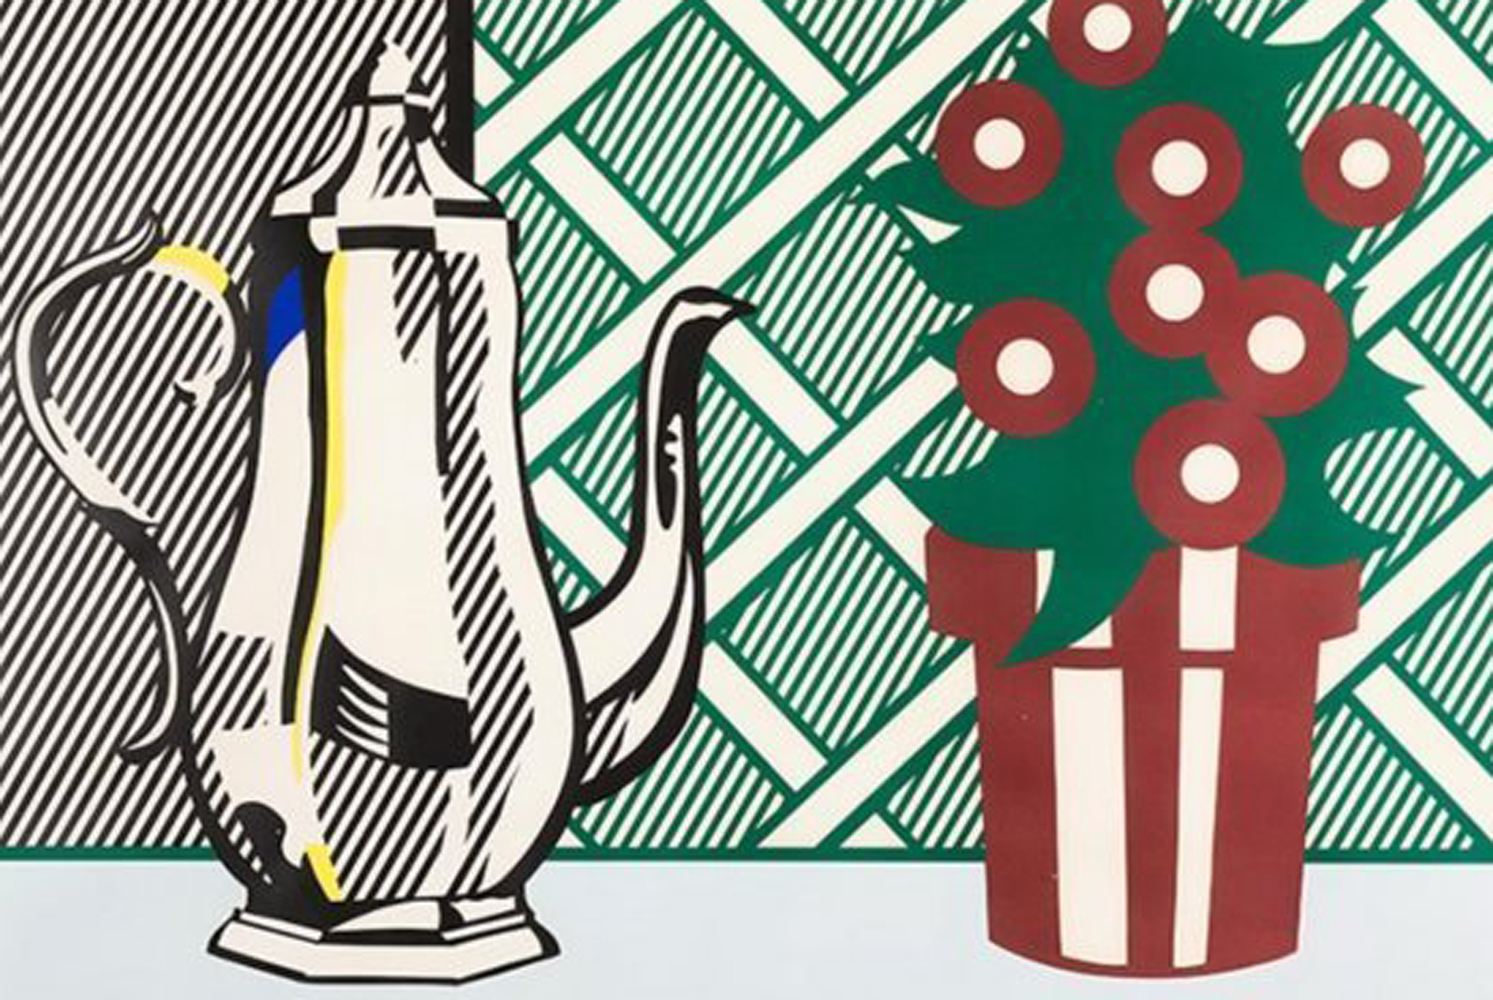 Still Life With Pitcher And Flowers 1974 by Roy Lichtenstein